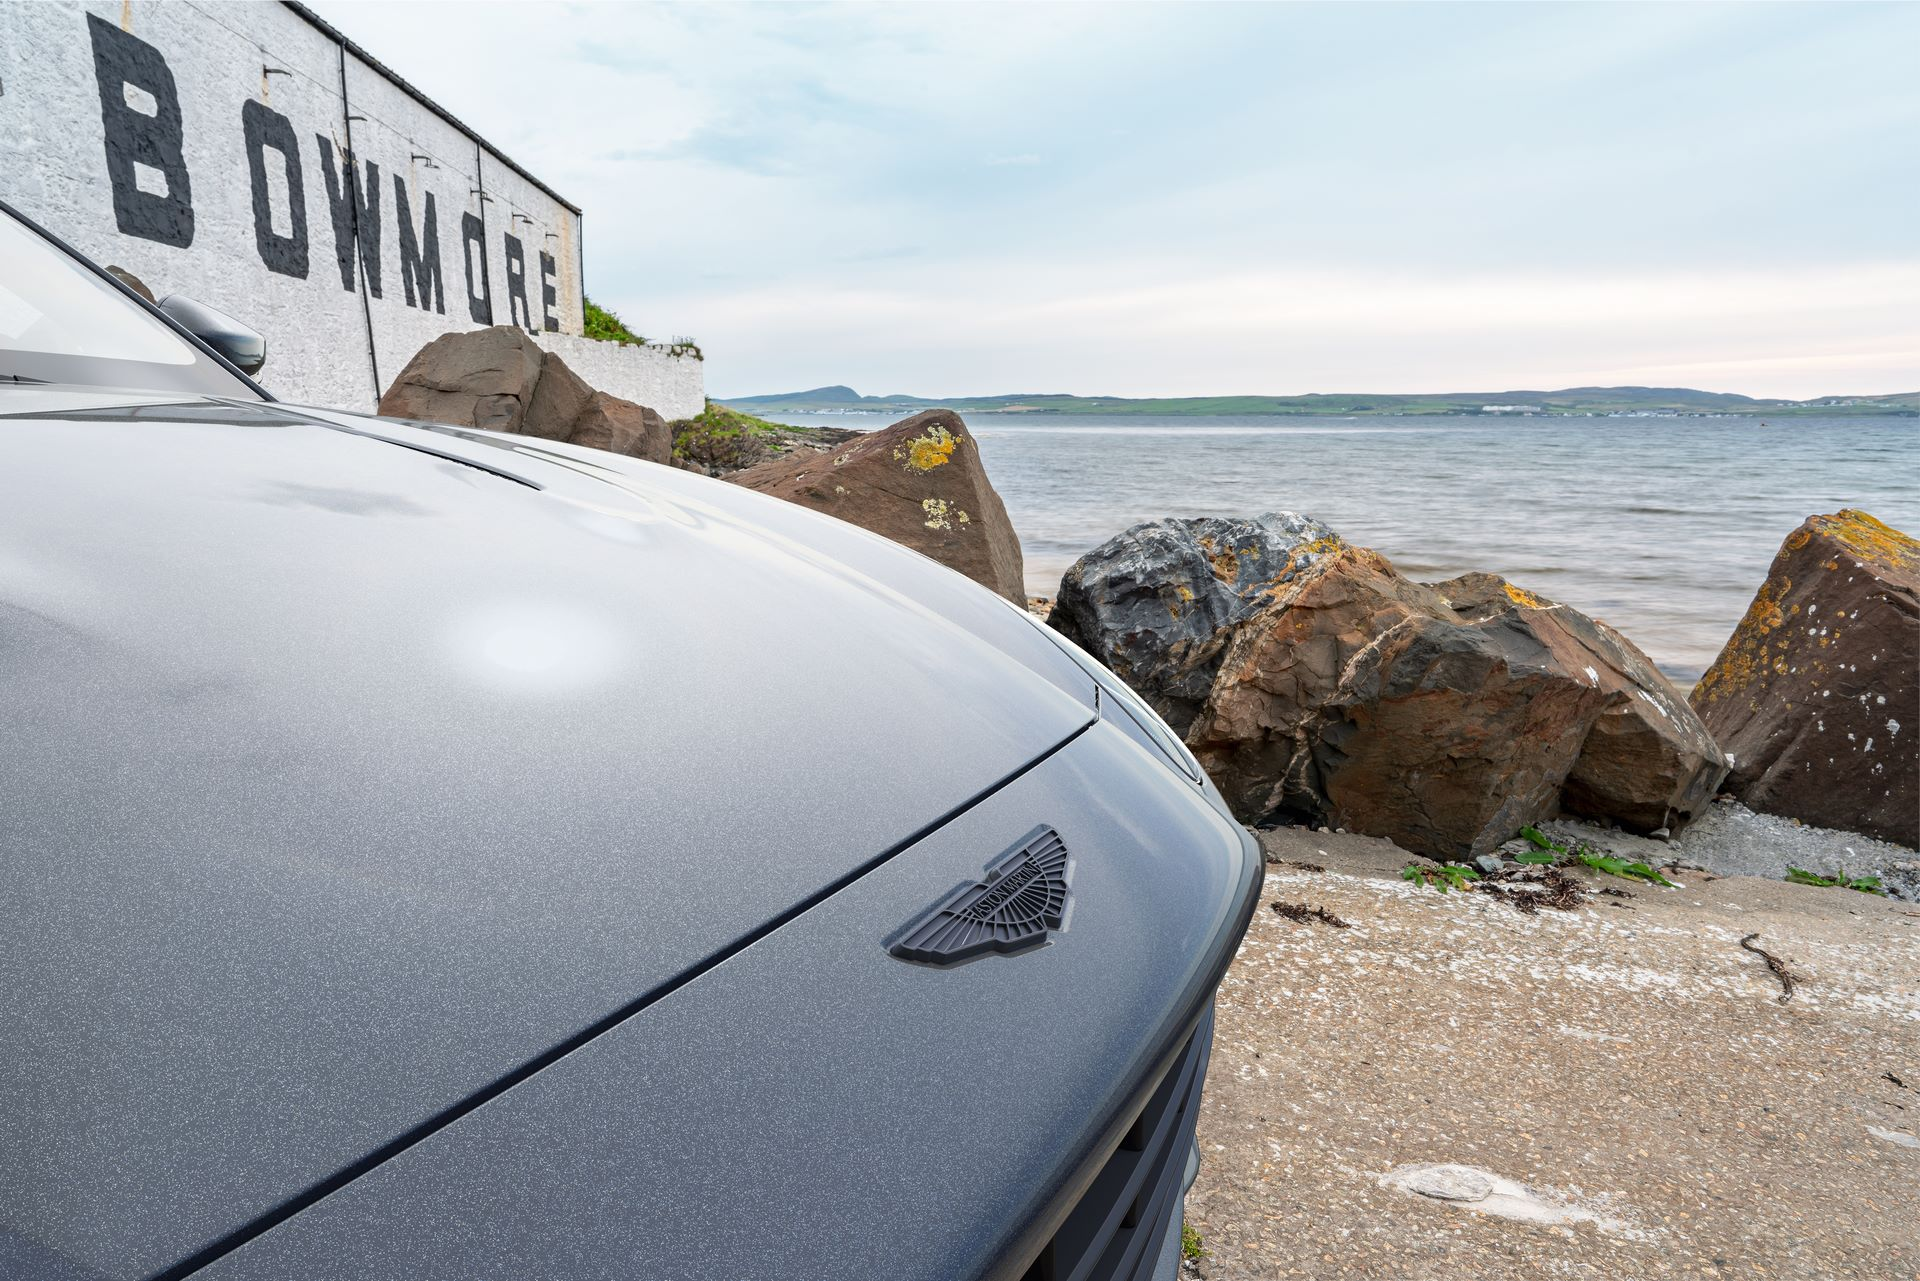 Aston-Martin-DBX-Bowmore-Edition-by-q-by-aston-martin-14